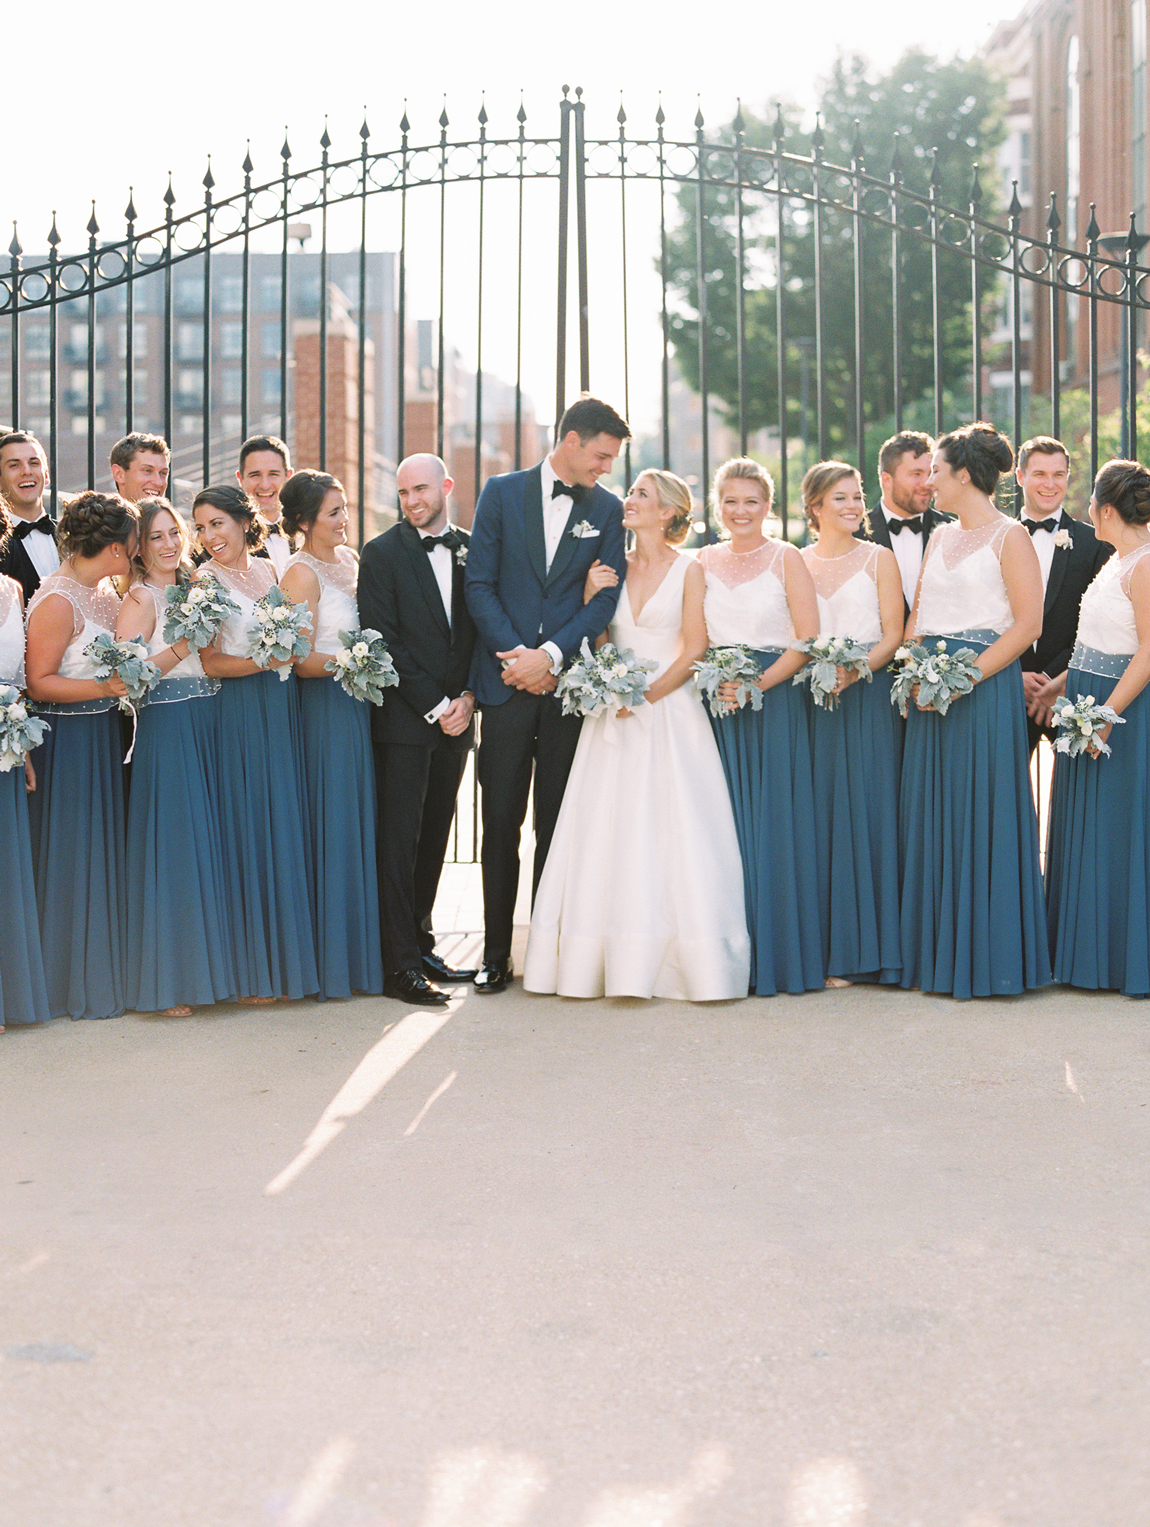 bride and groom with wedding party wearing black tuxedos and dark blue skirts with white tops